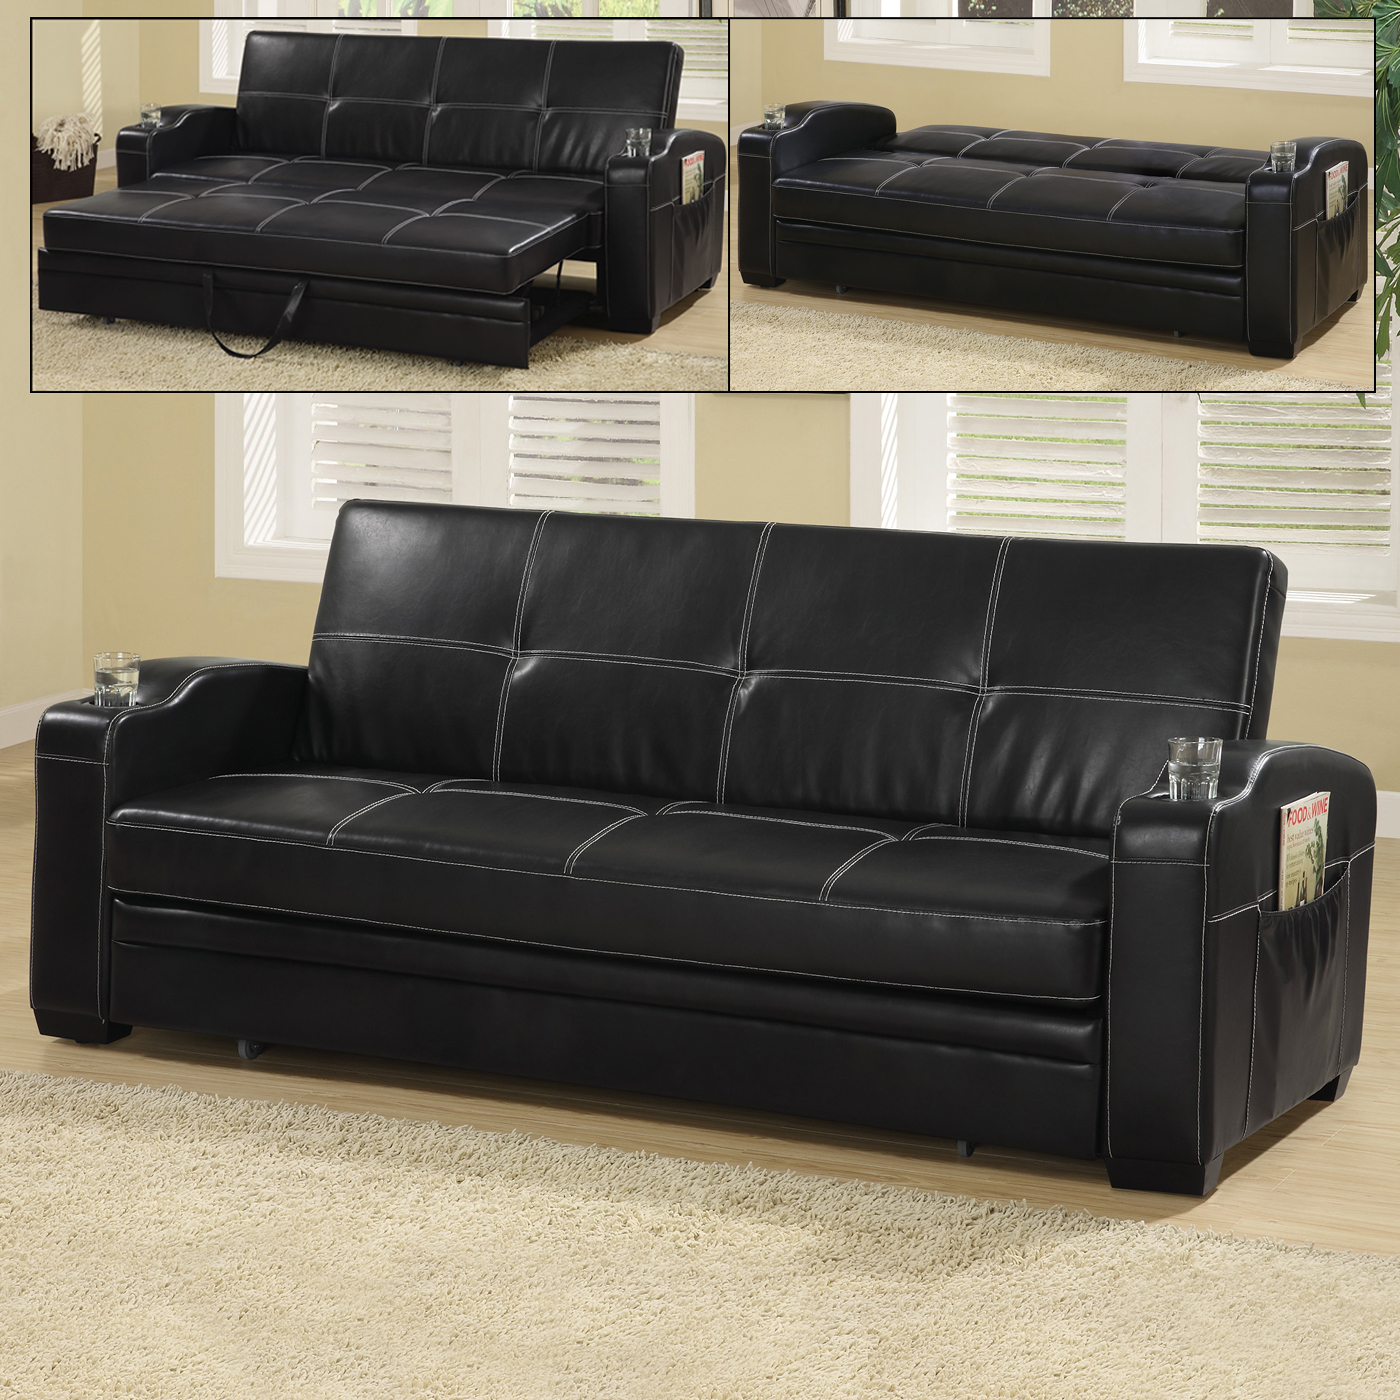 Cheap Faux Leather Sofa: Faux Leather Sofa Bed With Storage And Cup Holders